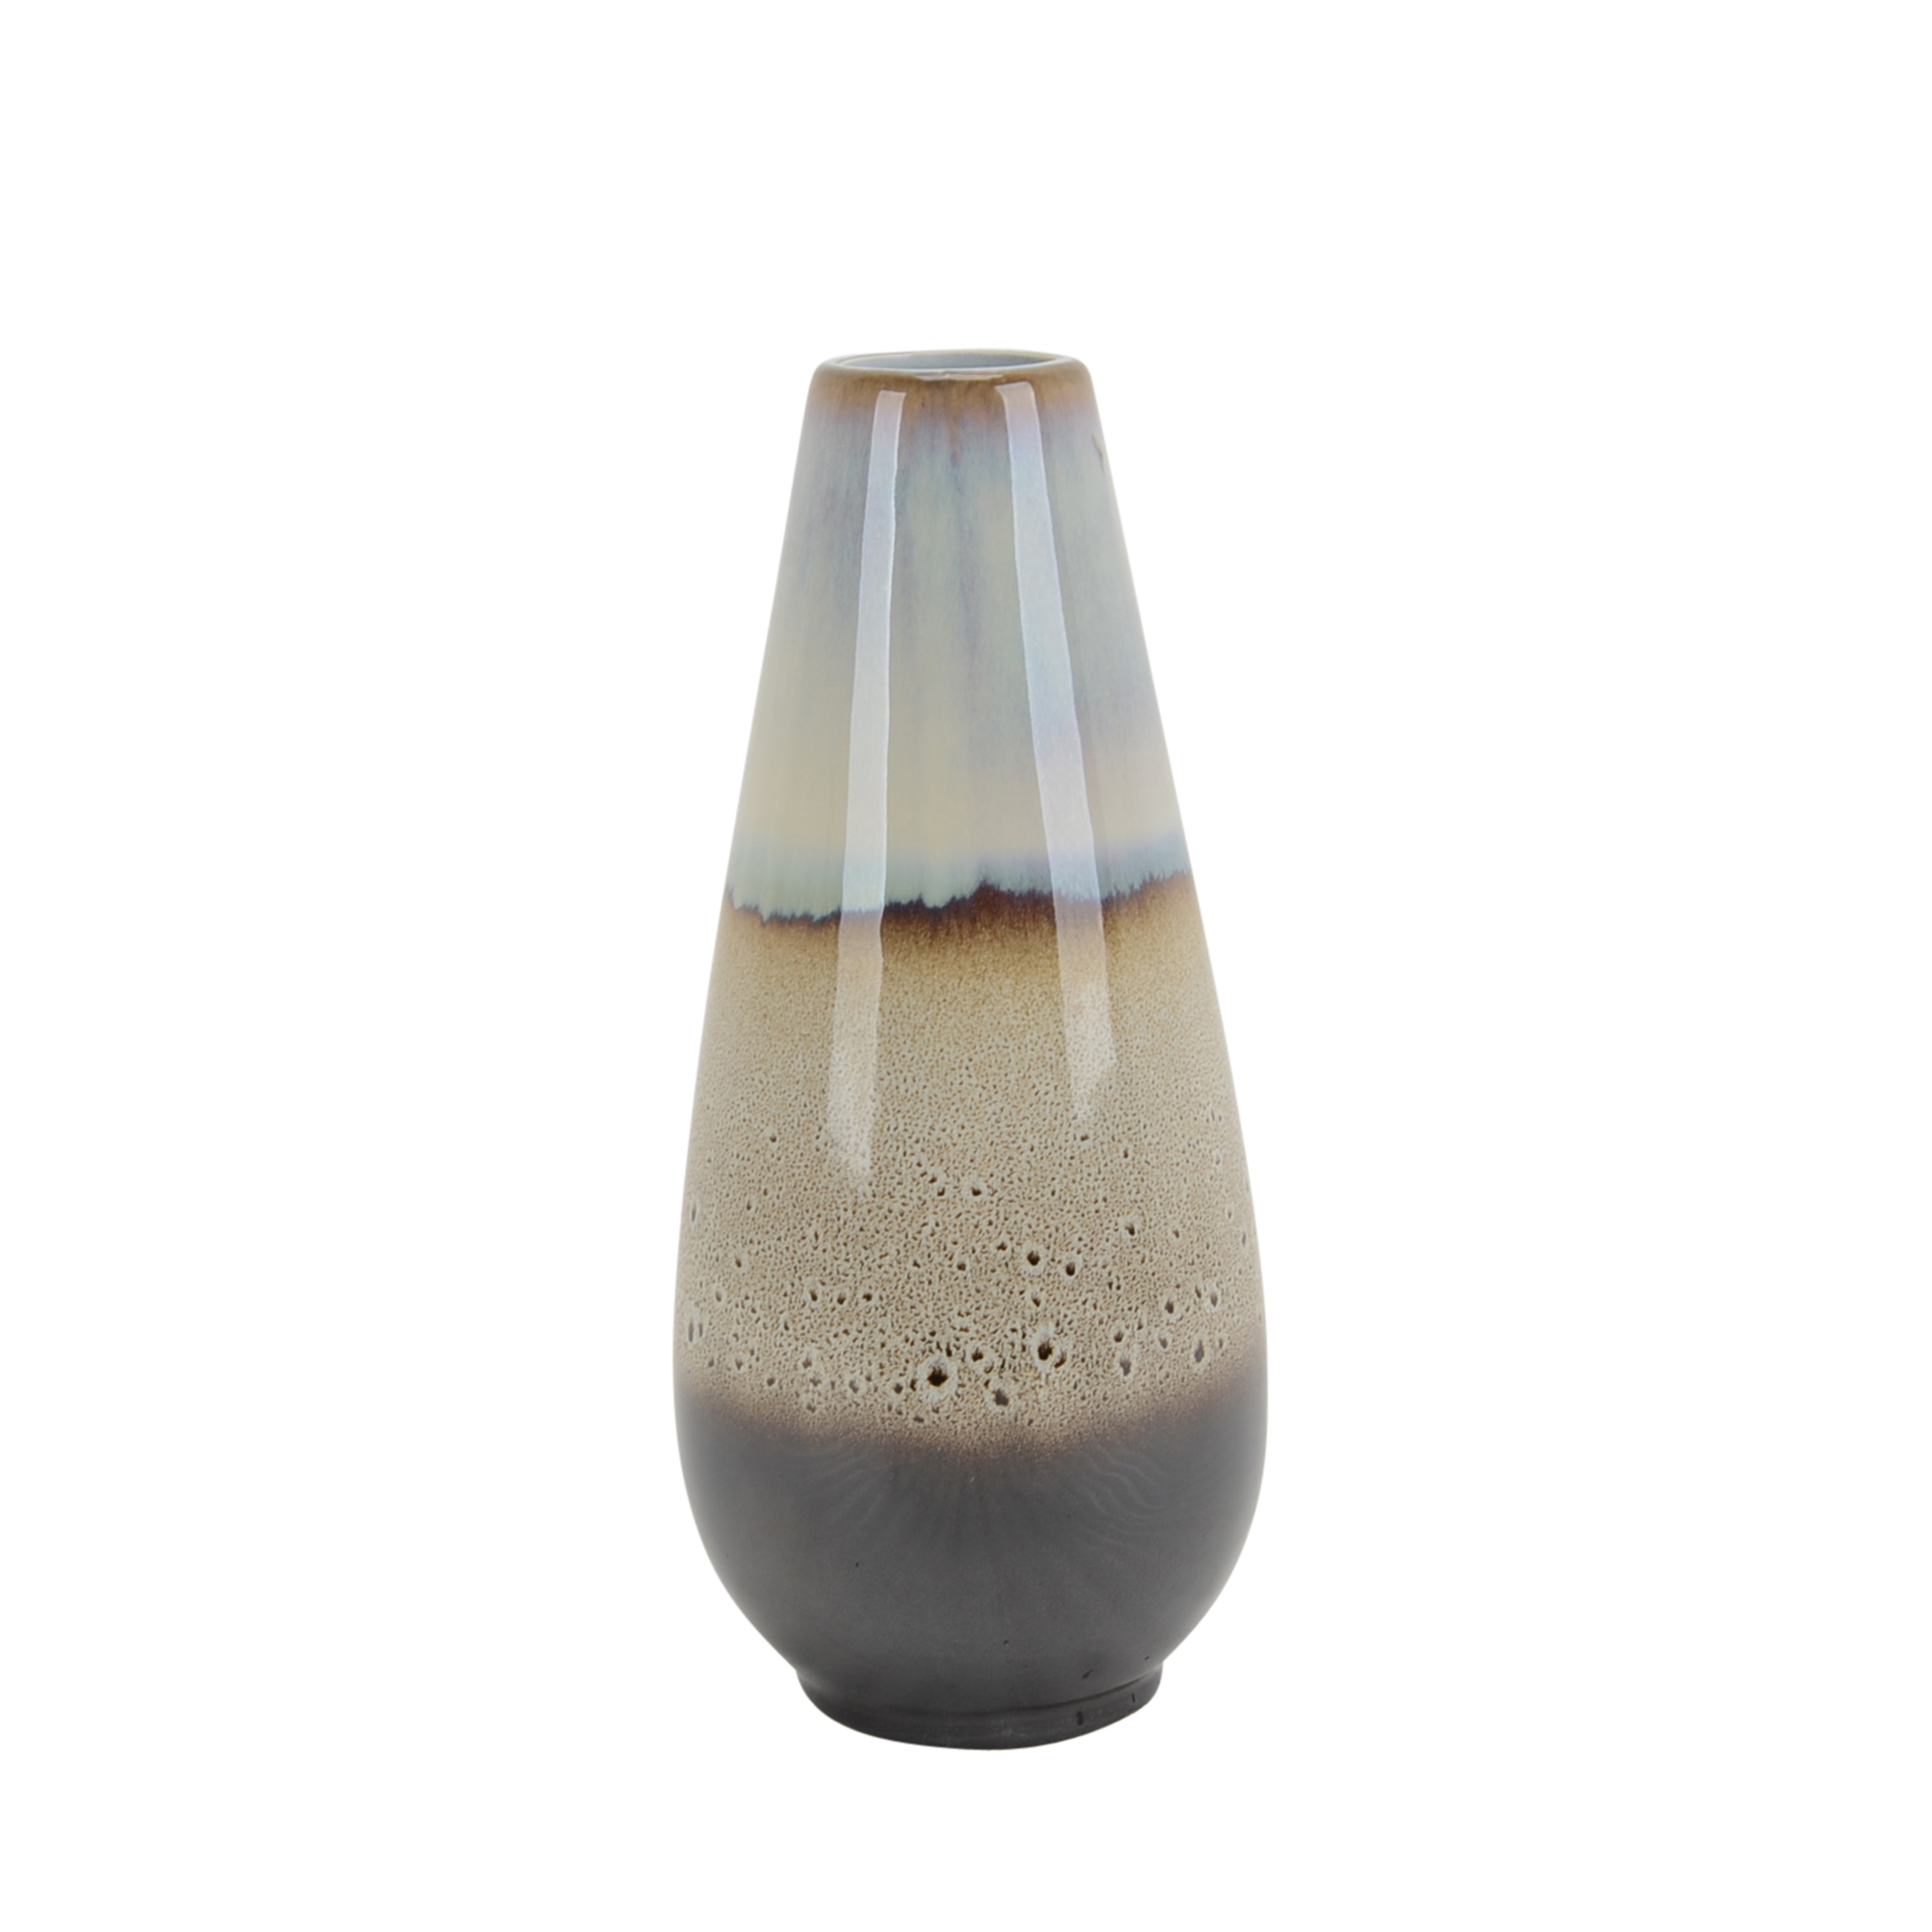 Decorative Ceramic Vase with Narrow Round Neck and Tapered Bottom, Gray and Brown